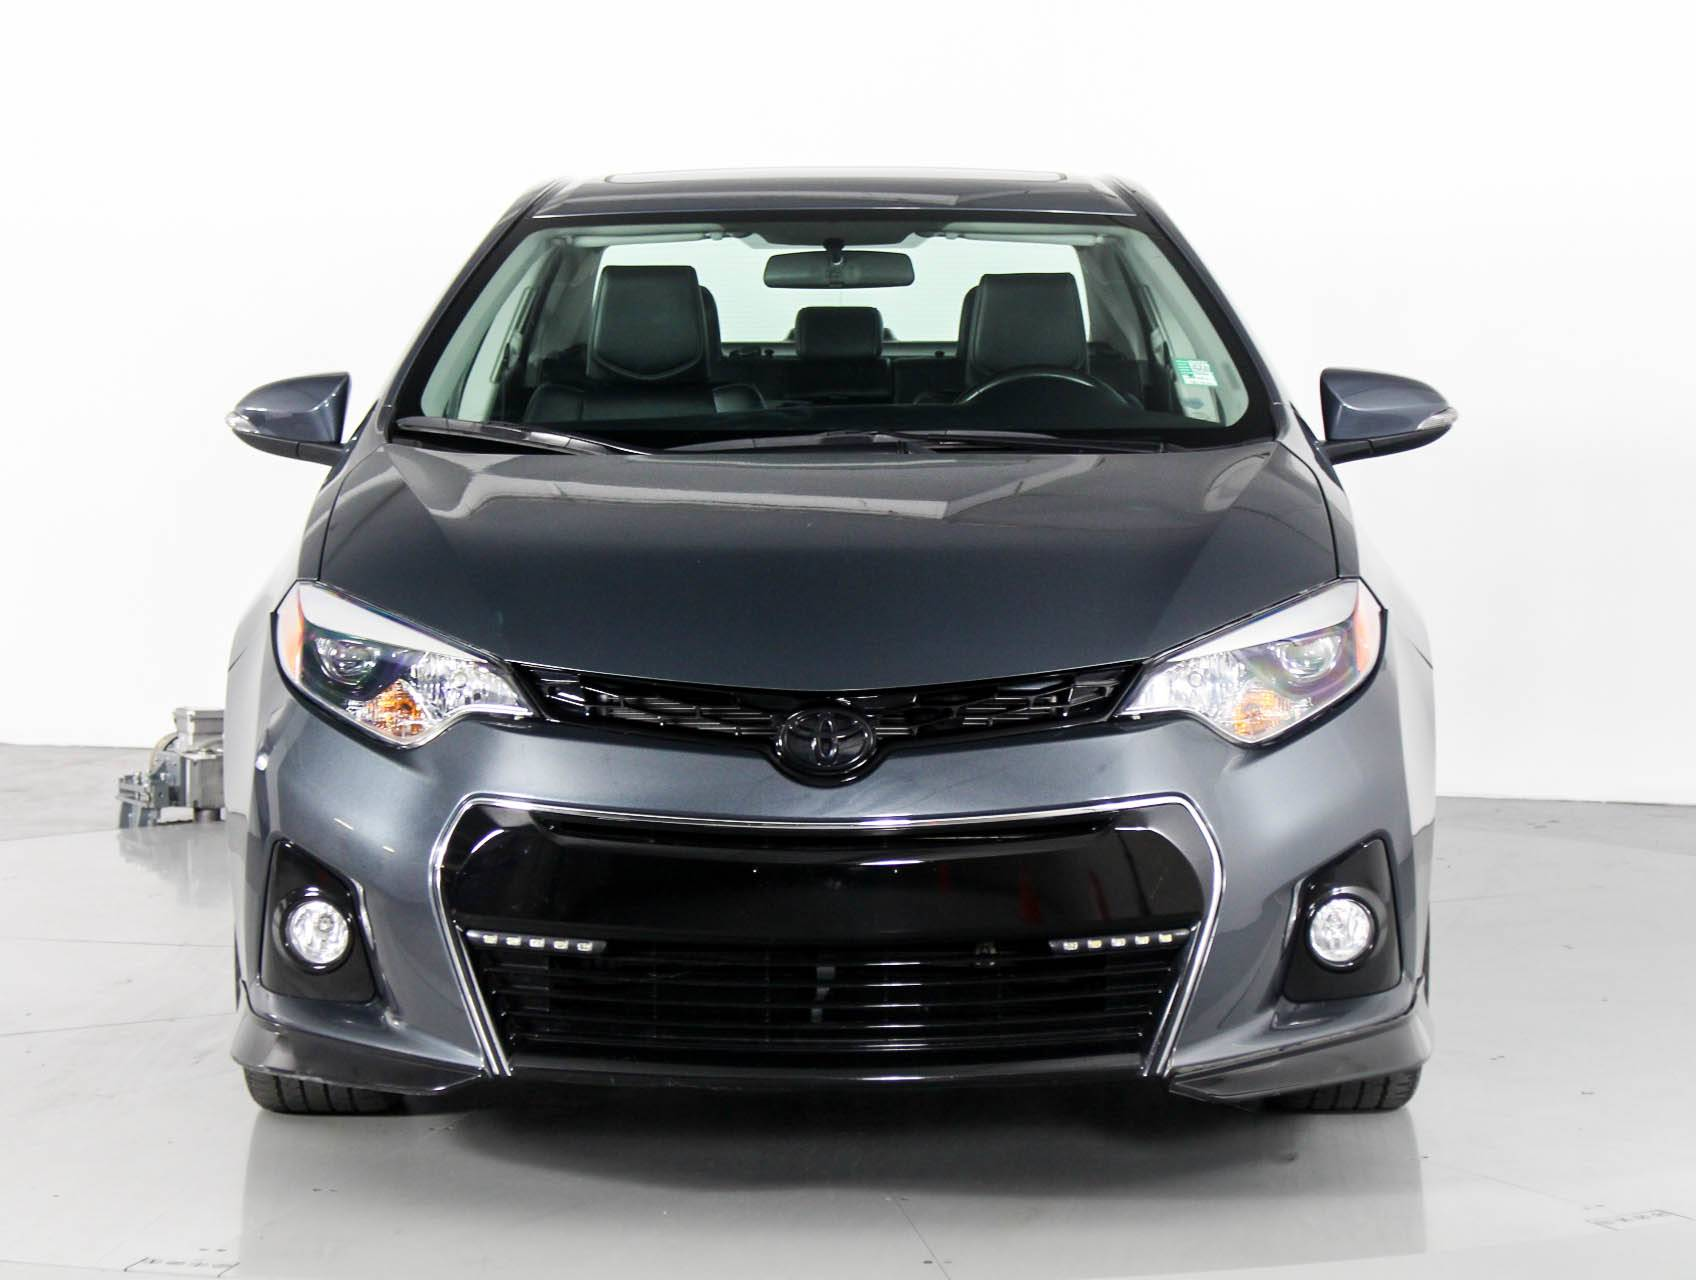 Toyota Corolla Xsp | 2019-2020 New Car Specs